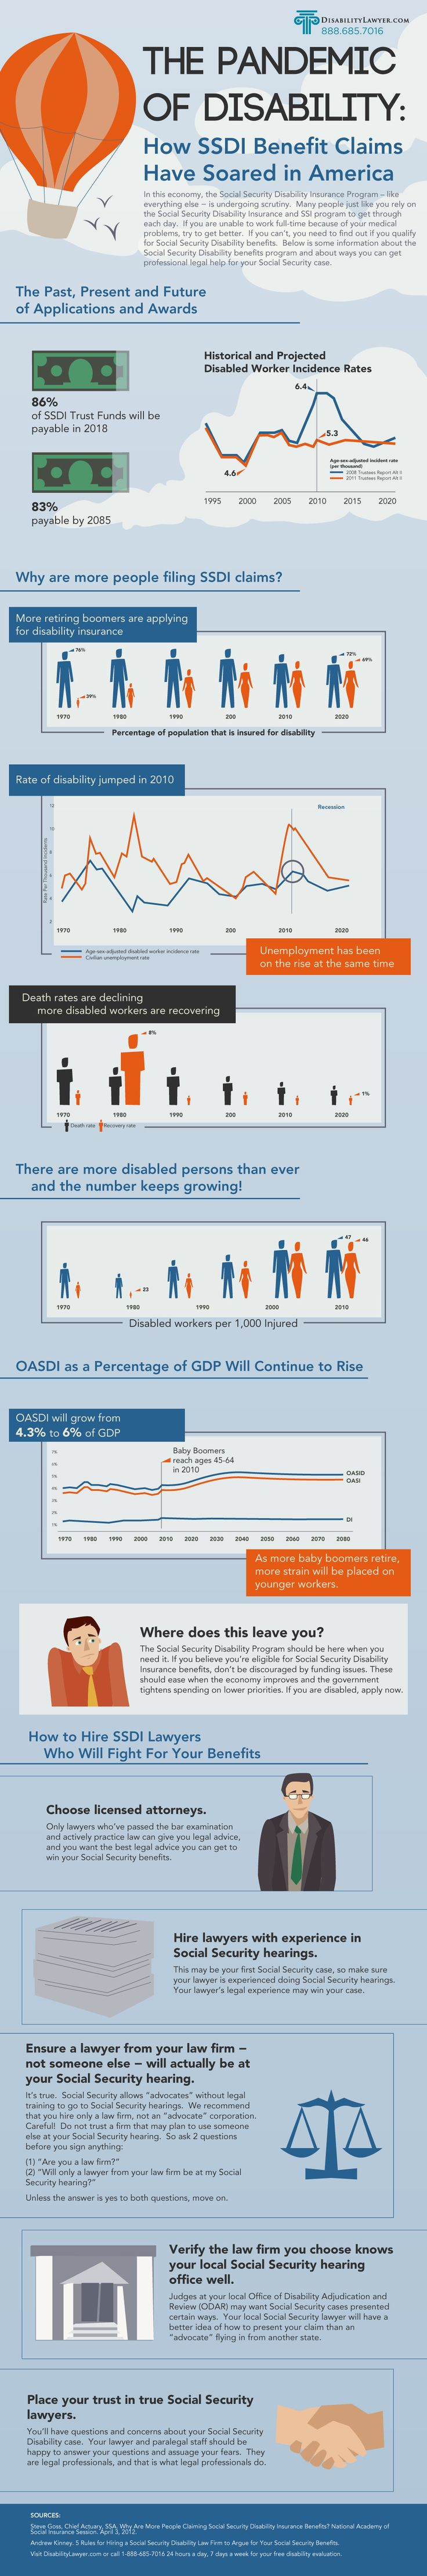 #infographic: The Pandemic Of Disability In This Economy, The Social  Security Disability Insurance